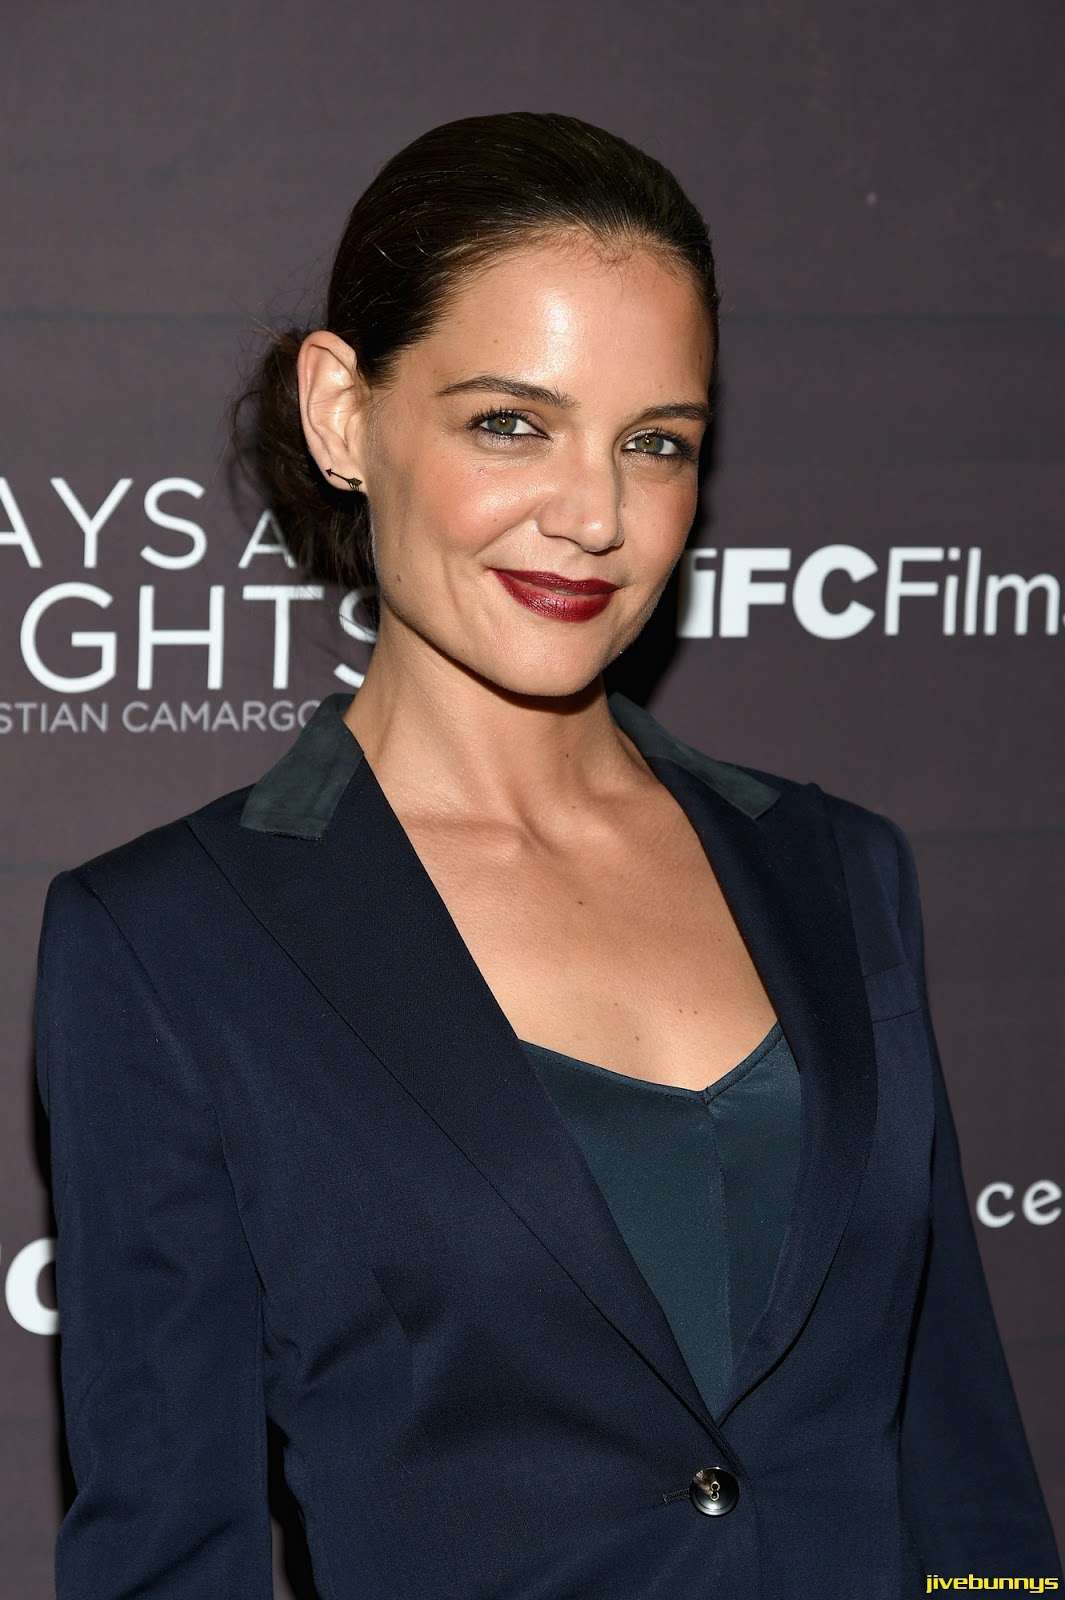 Katie Holmes - 'Days And Nights' premiere in New York City - 9/25/14